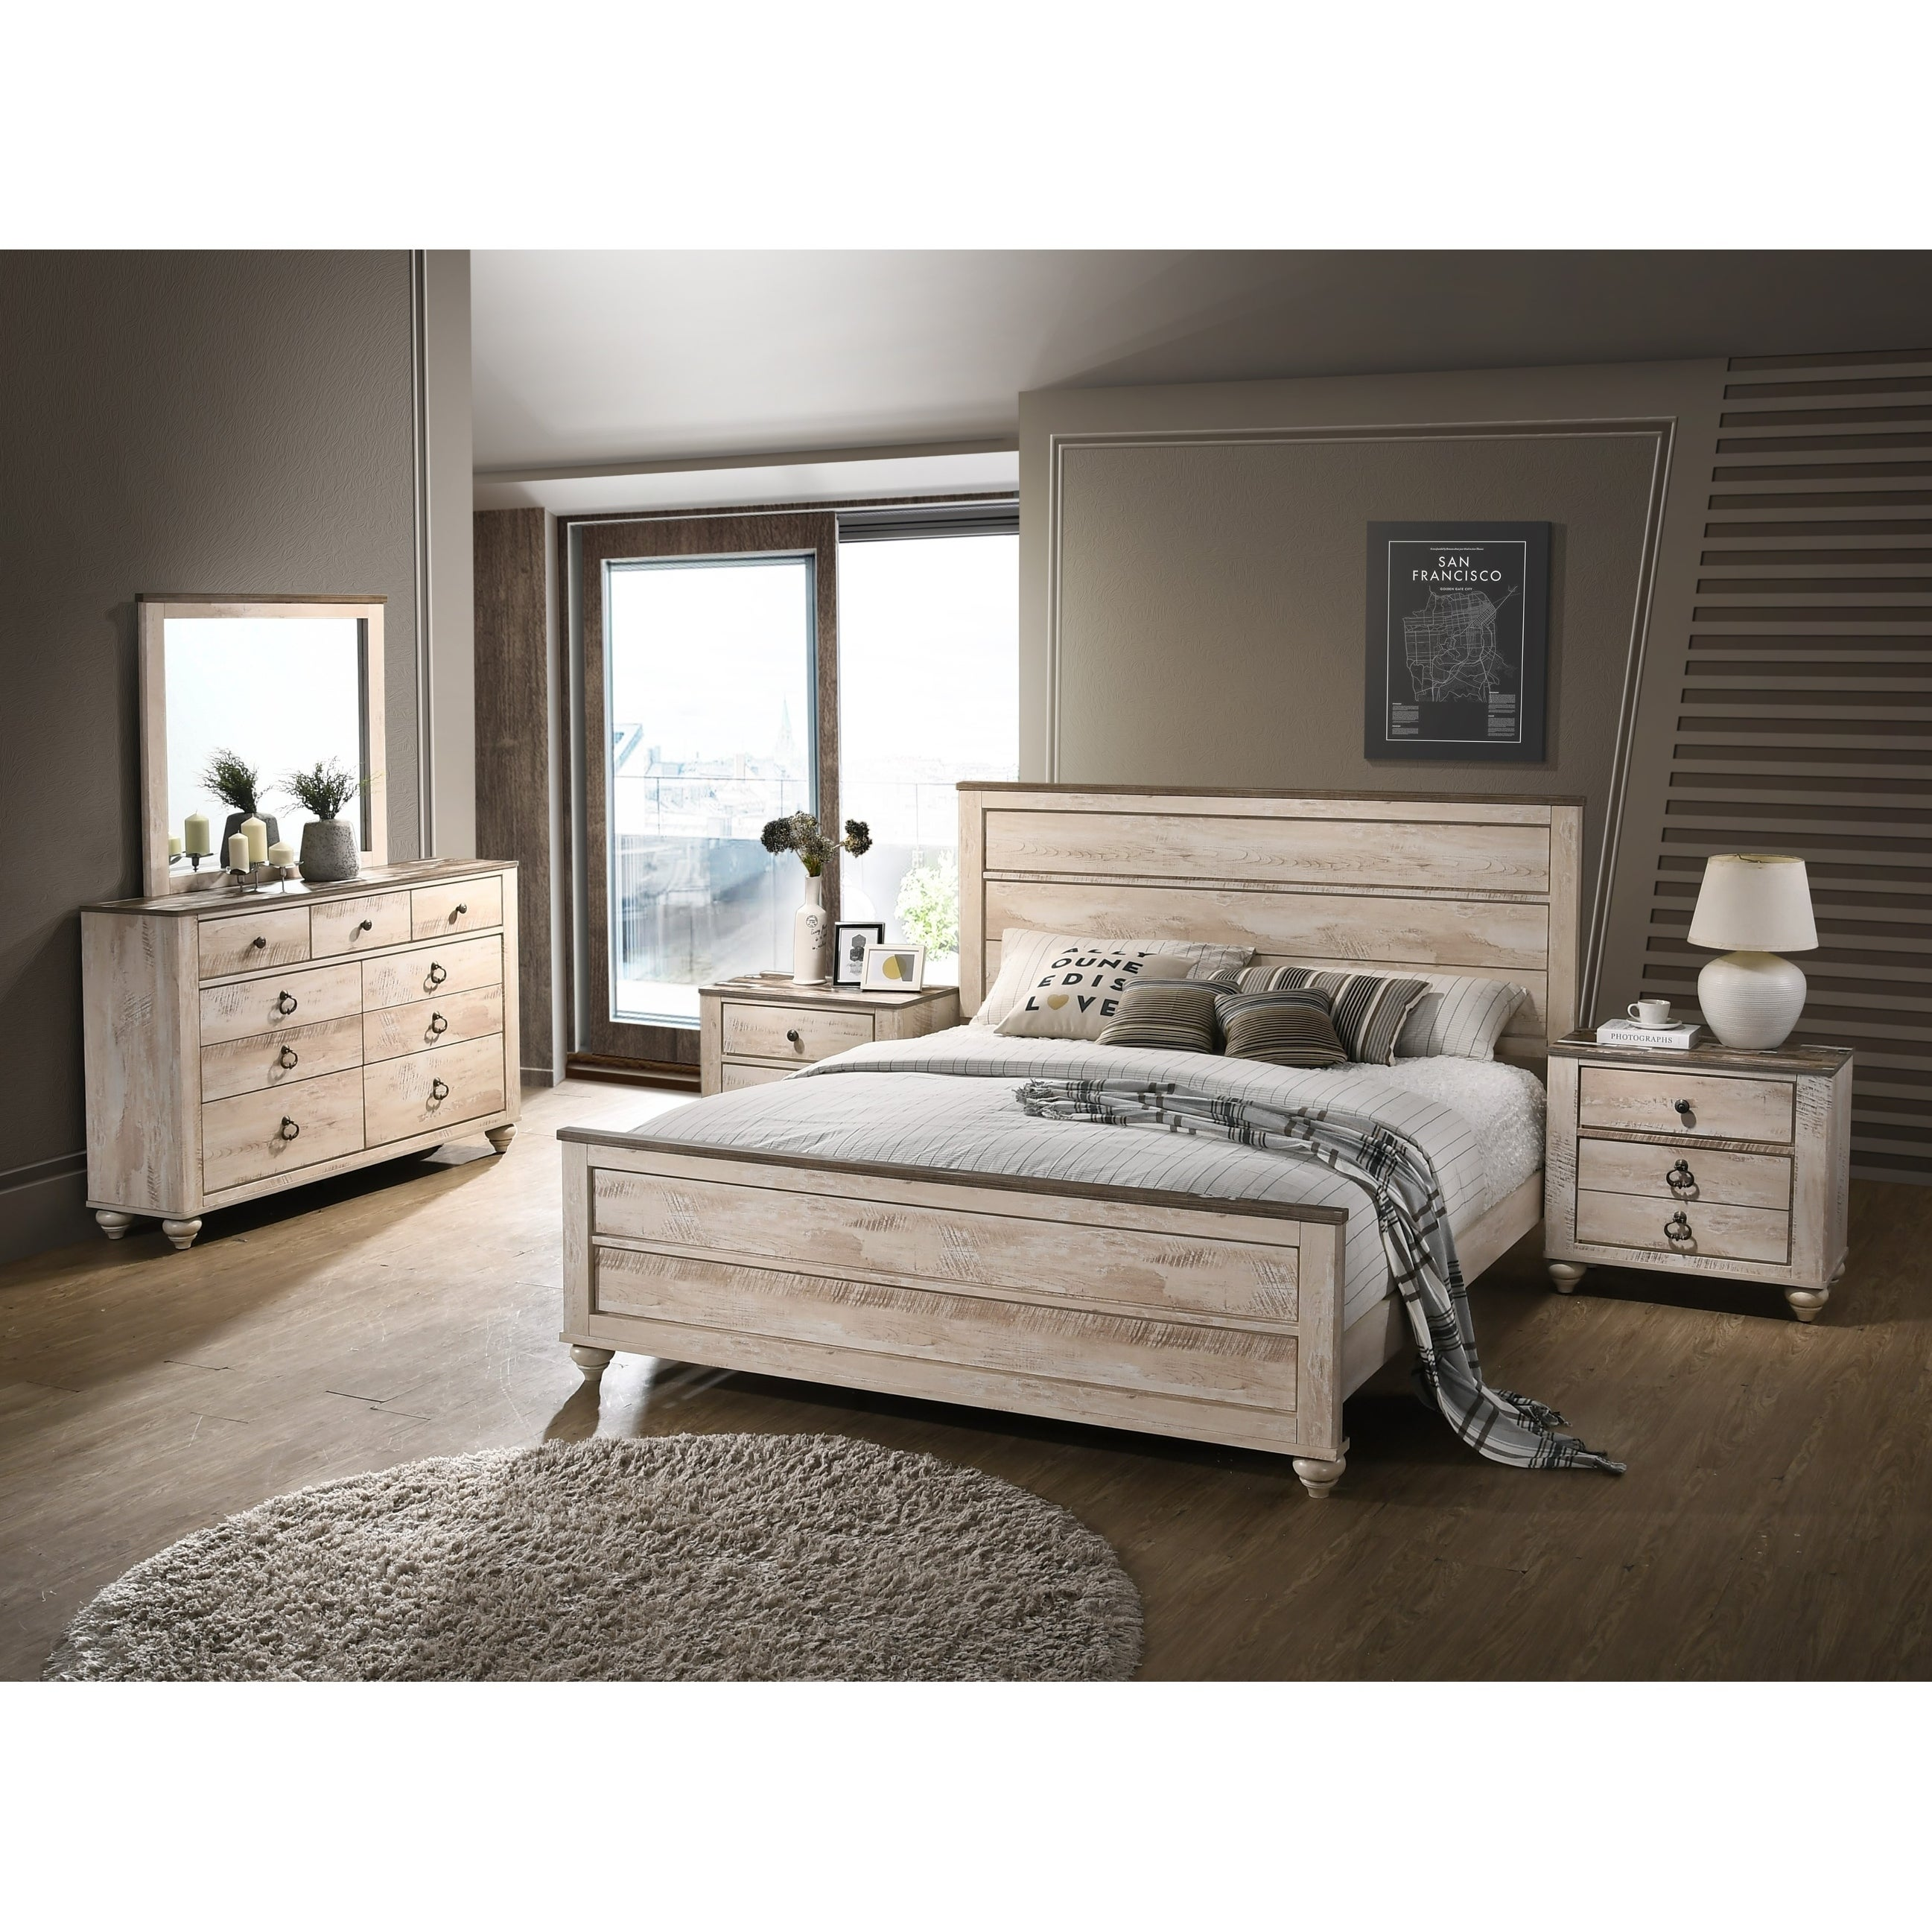 Imerland Contemporary White Wash Finish 5-Piece Bedroom Set, King